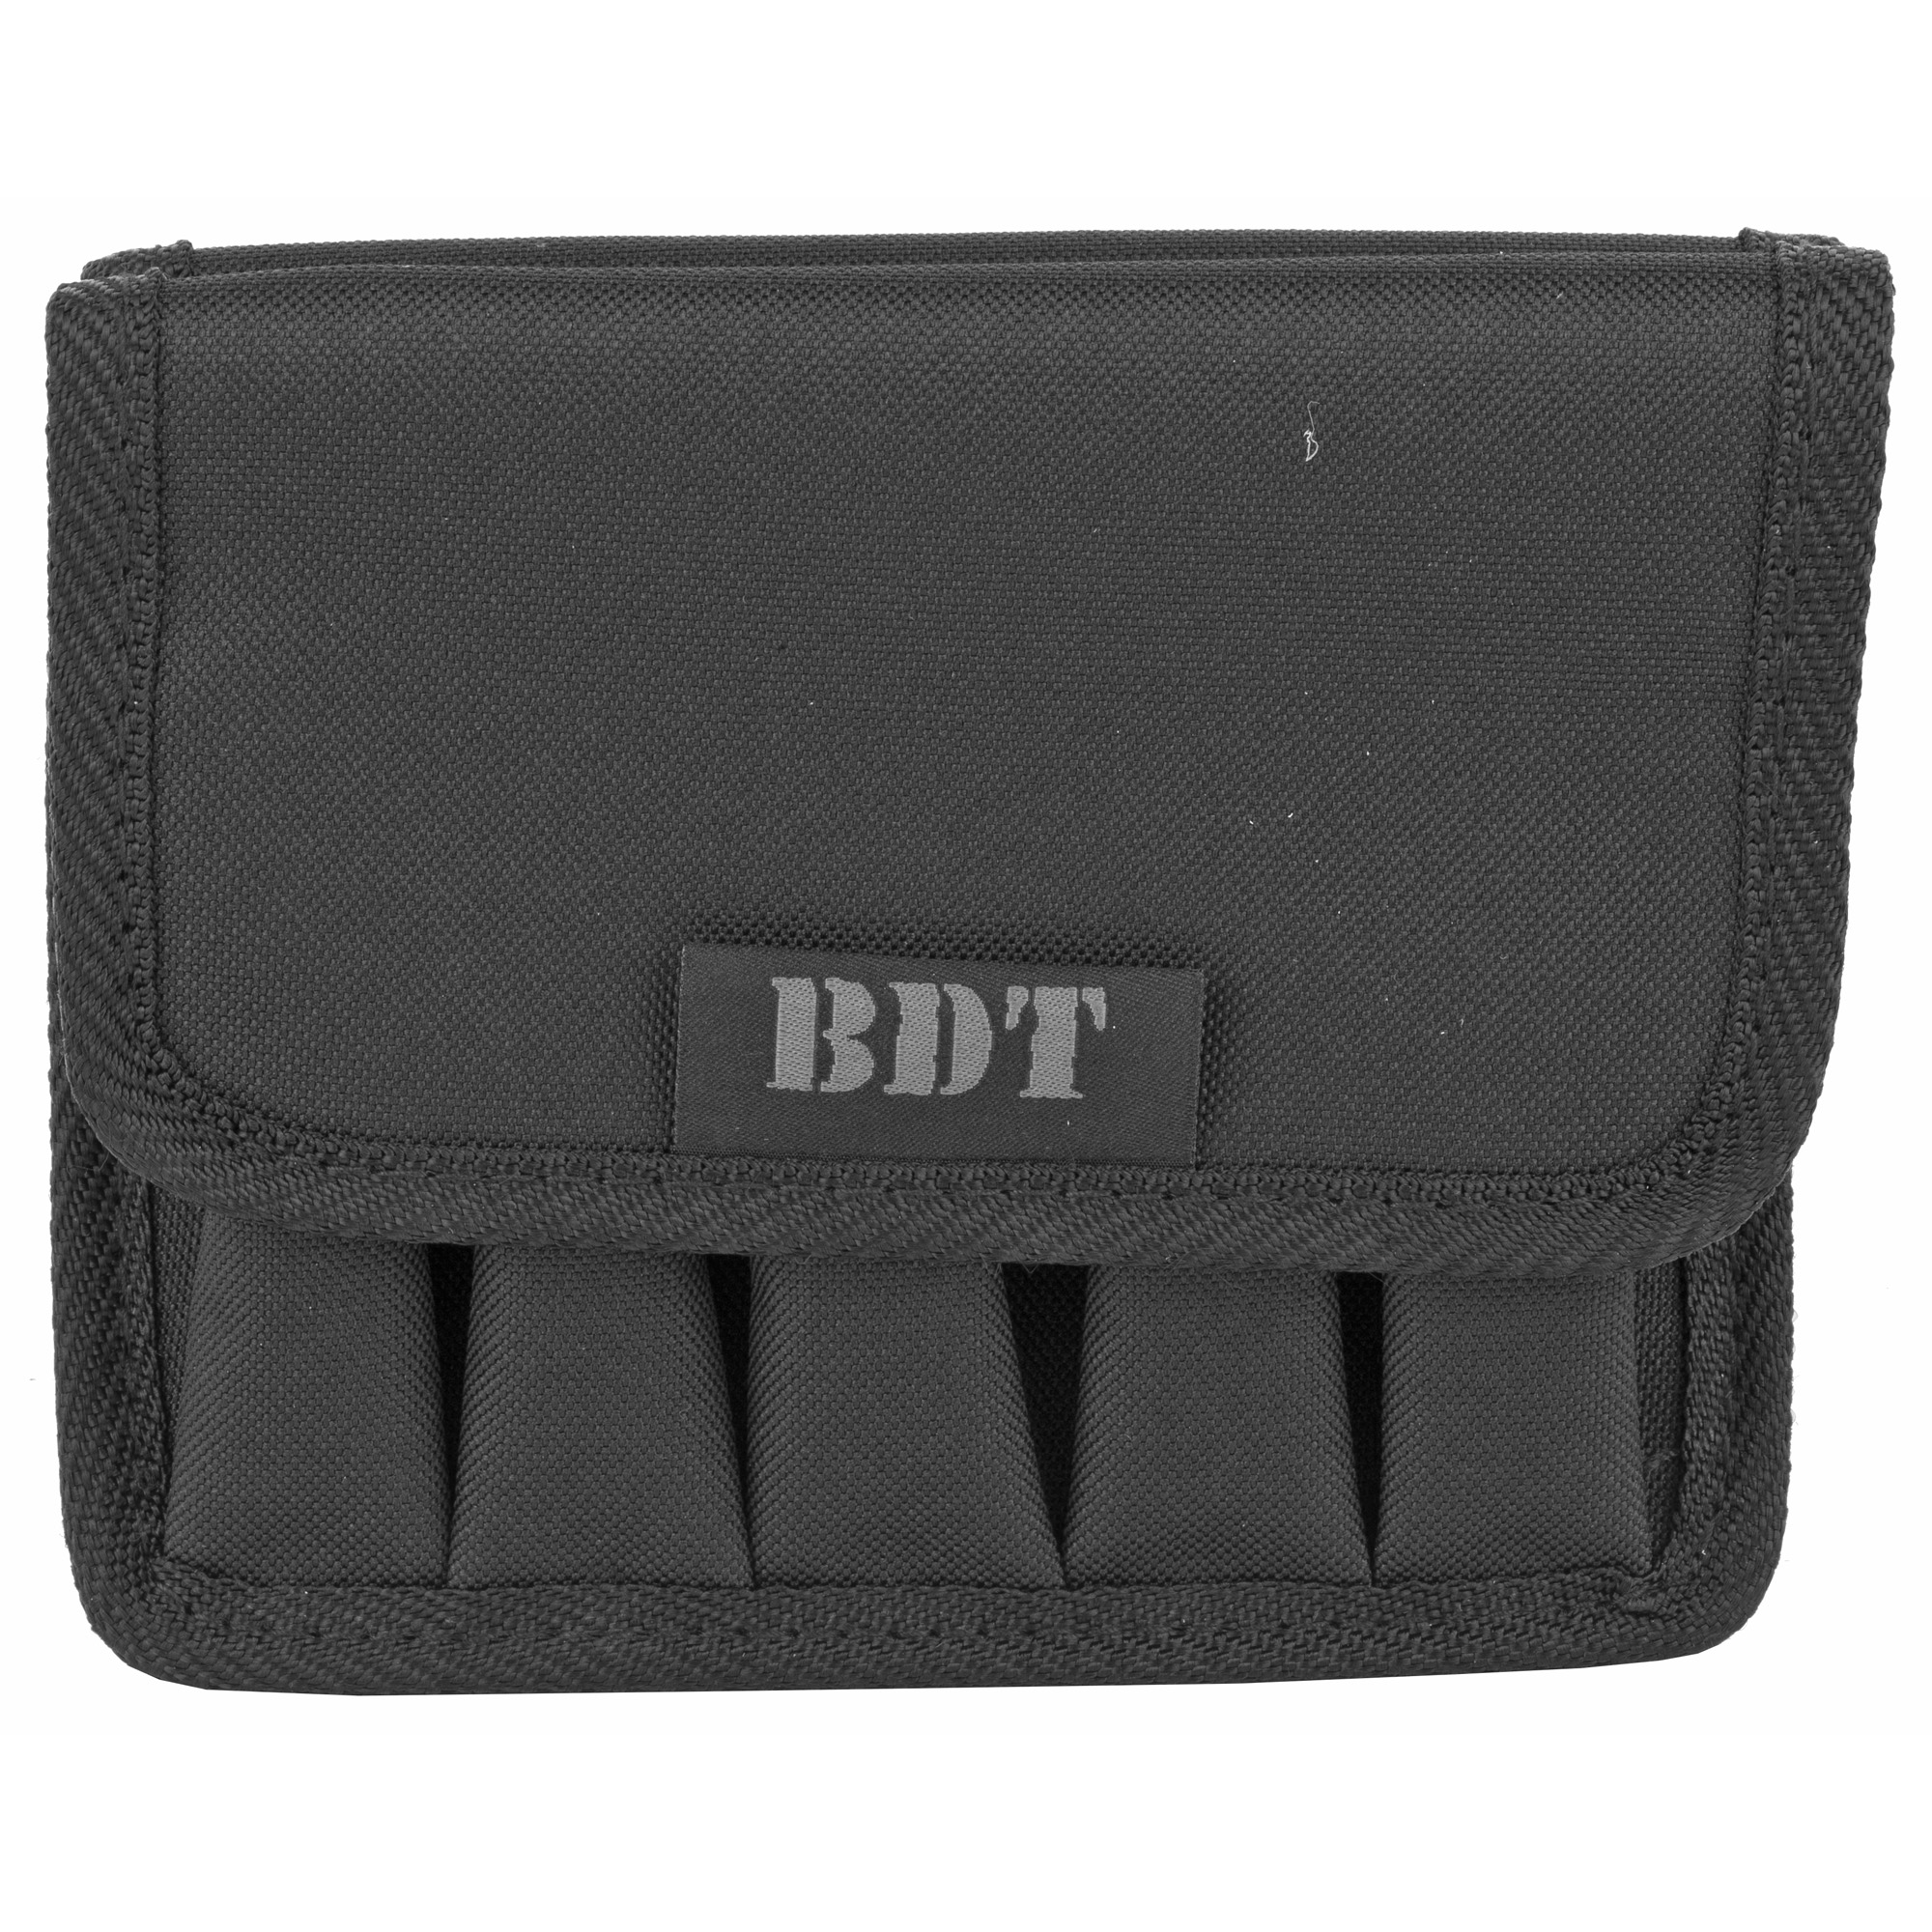 This pouch holds 5 high capacity pistol magazines or ten single stack magazines. It has a durable water resistant outer shell.